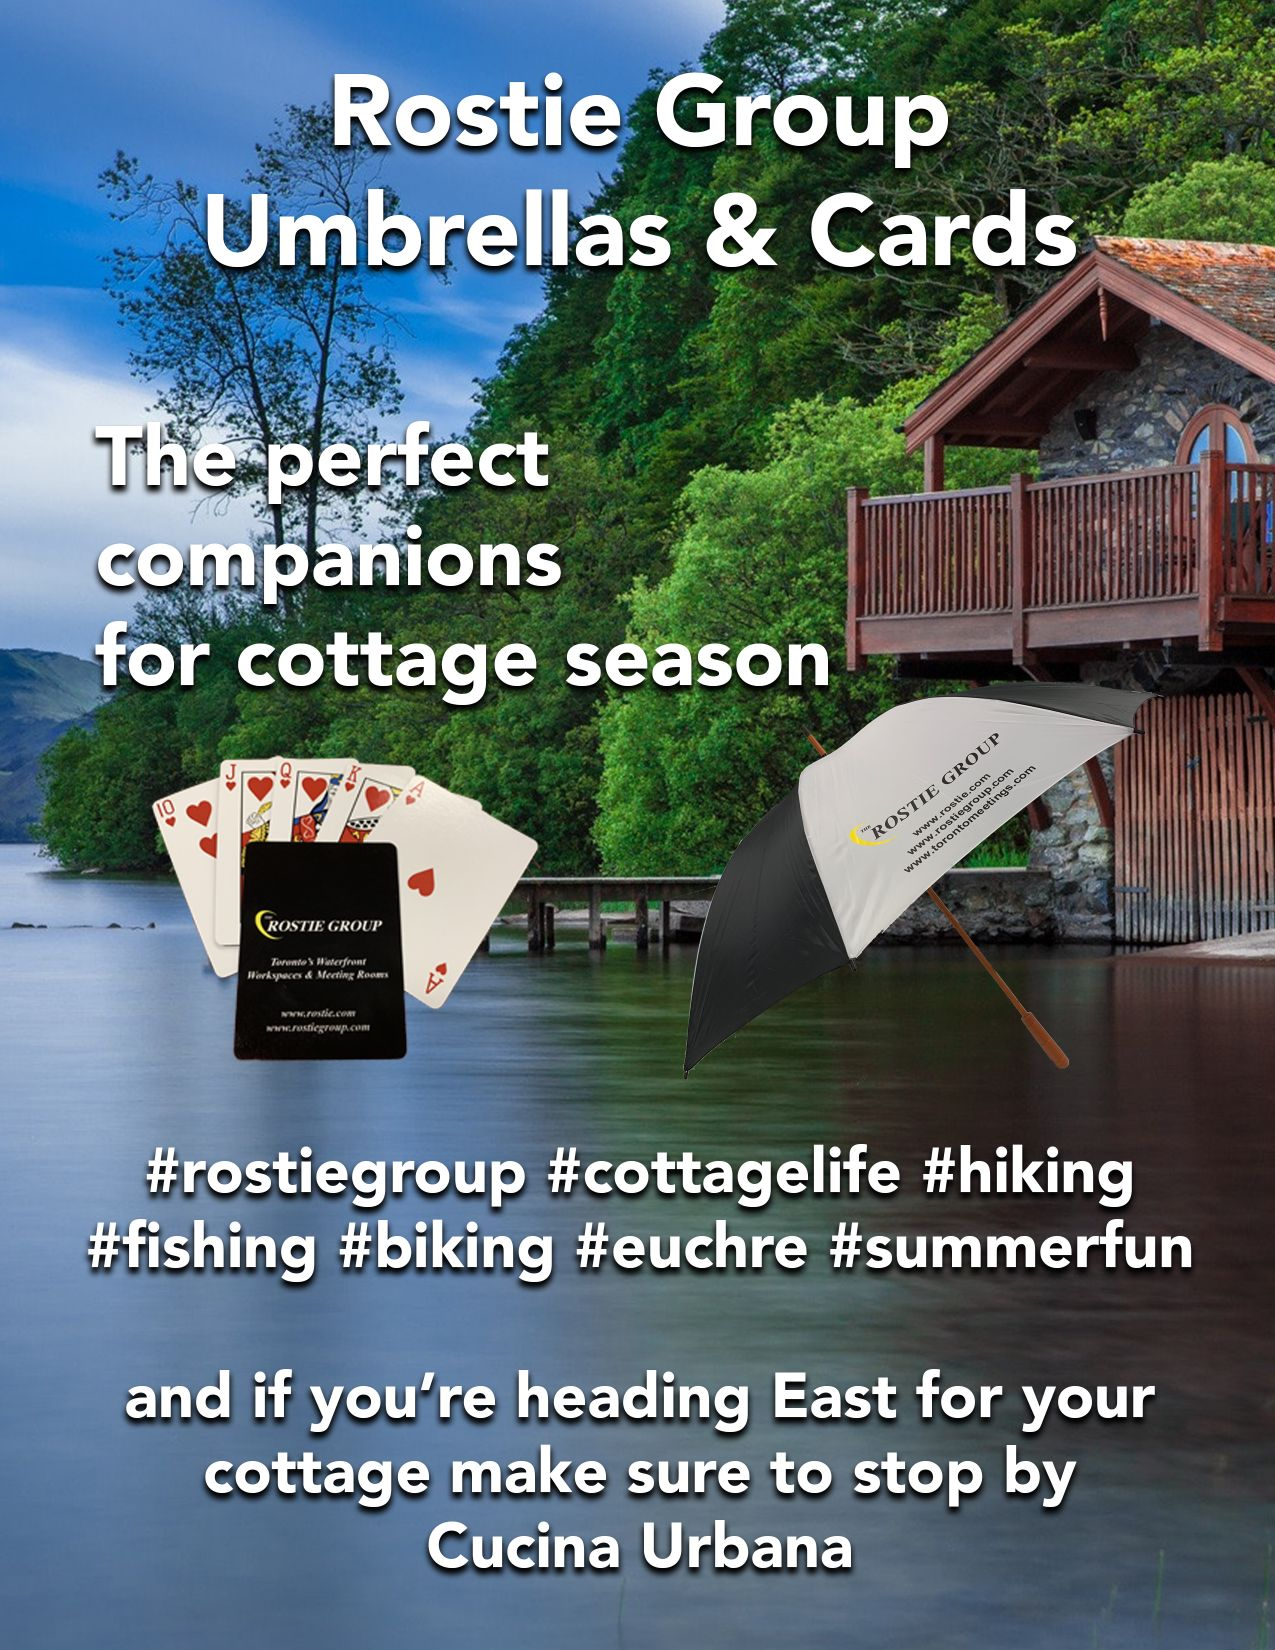 Rostie Group Umbrella and Cards